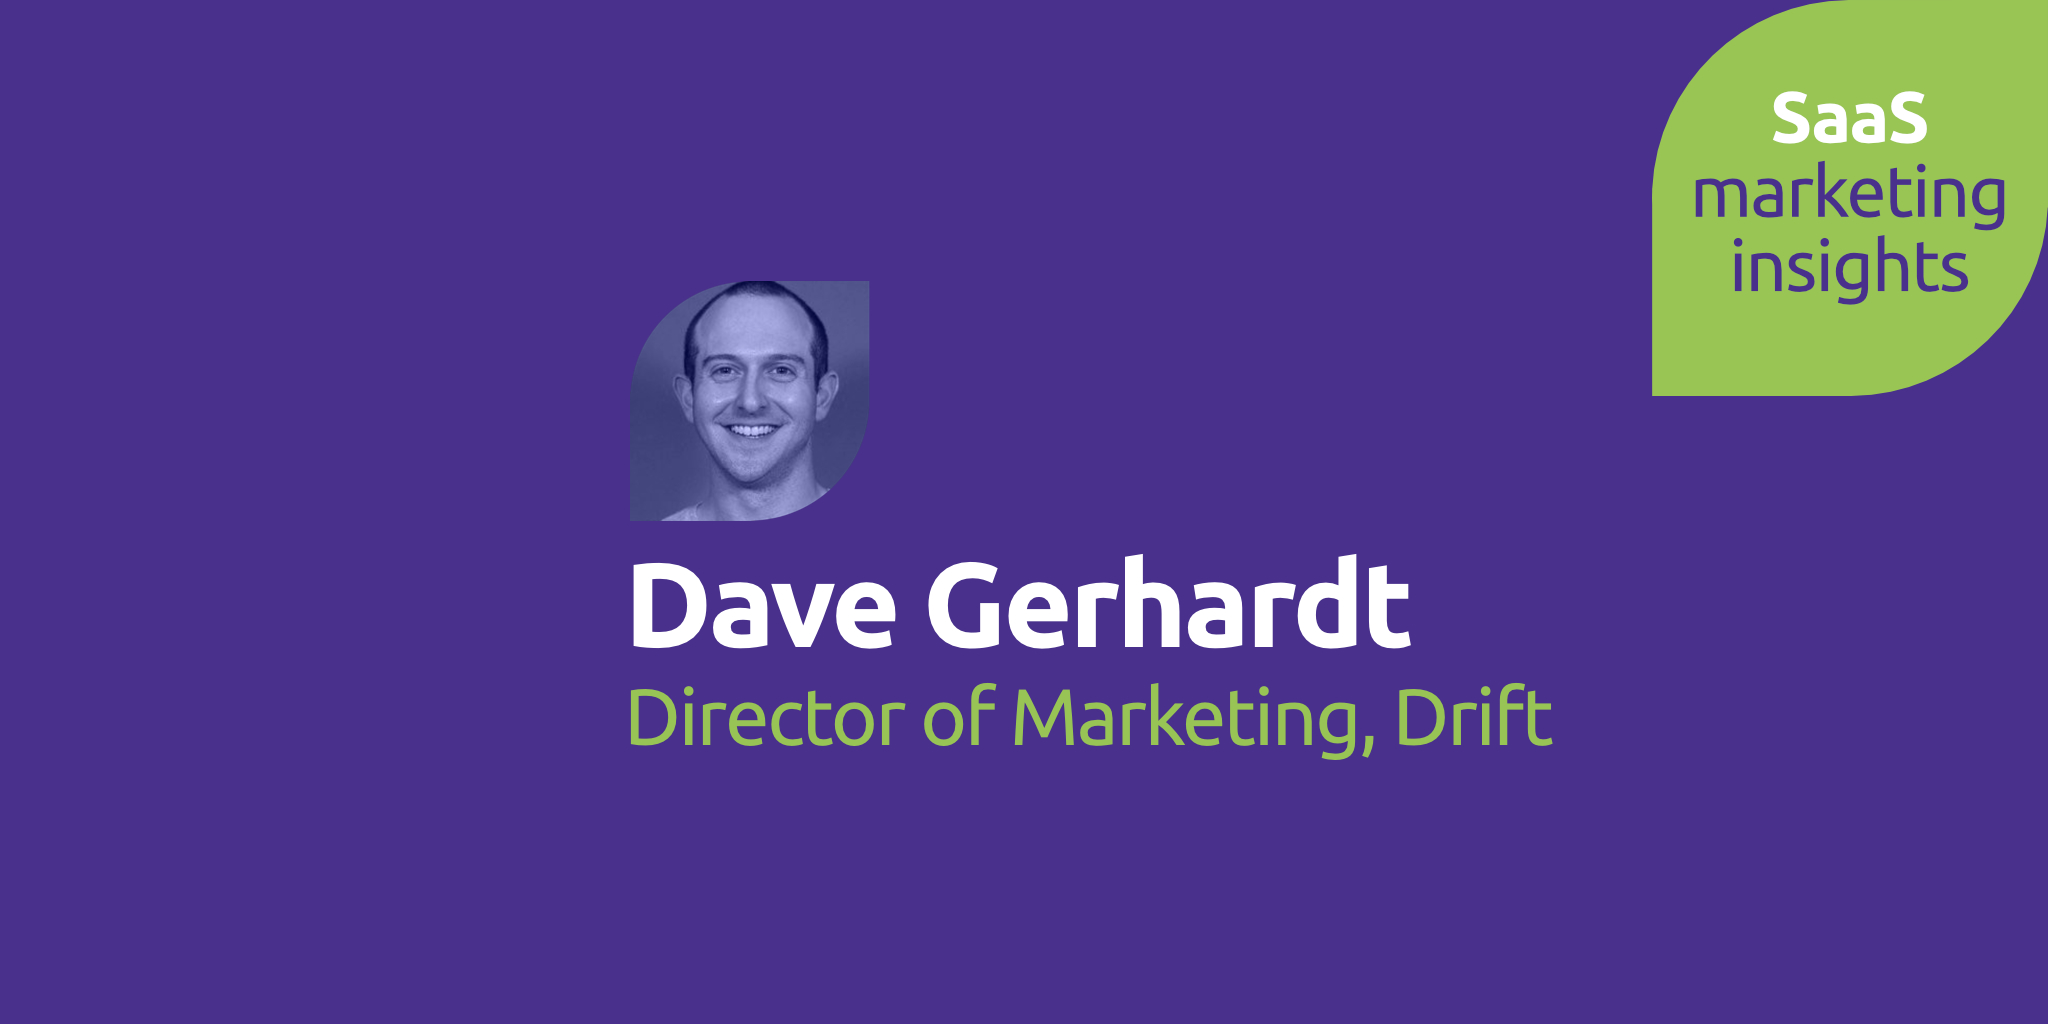 SaaS Marketing Insights, Episode 2: Dave Gerhardt, Drift